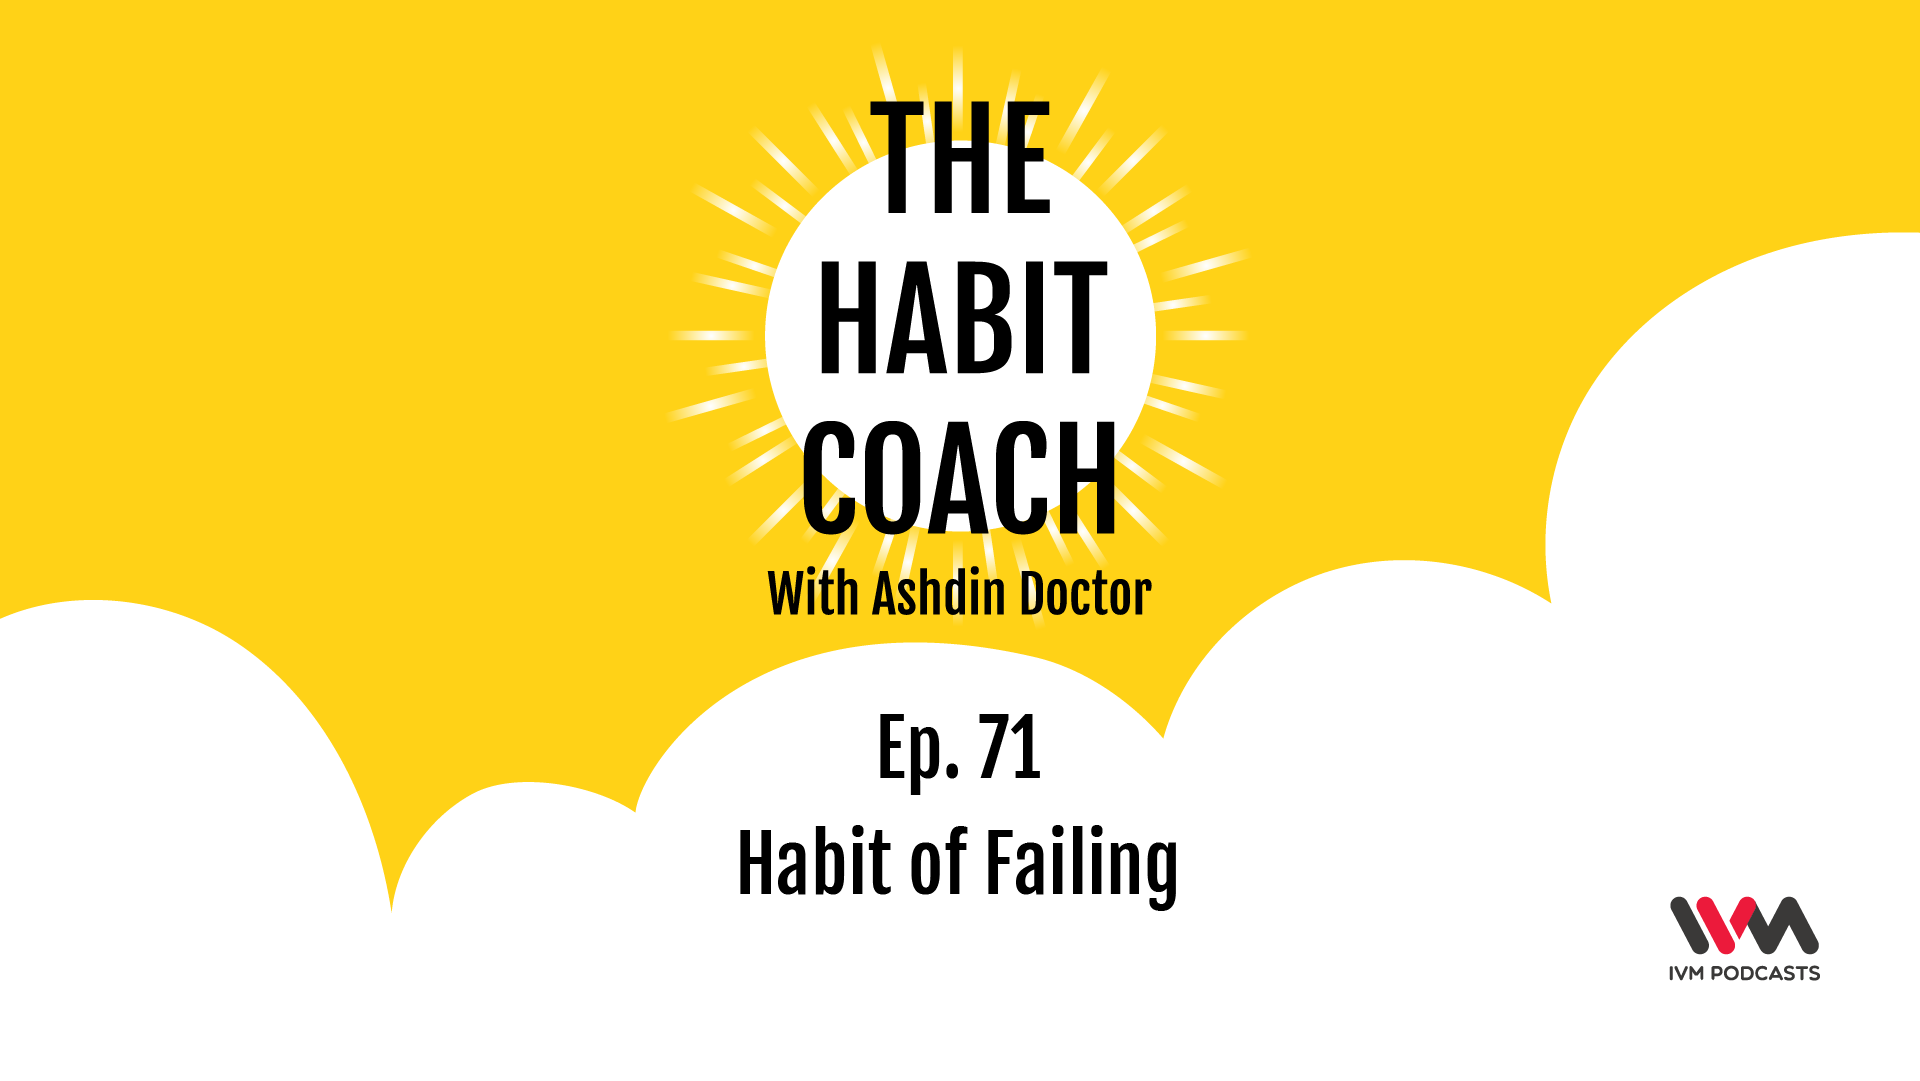 TheHabitCoachEpisode71.png